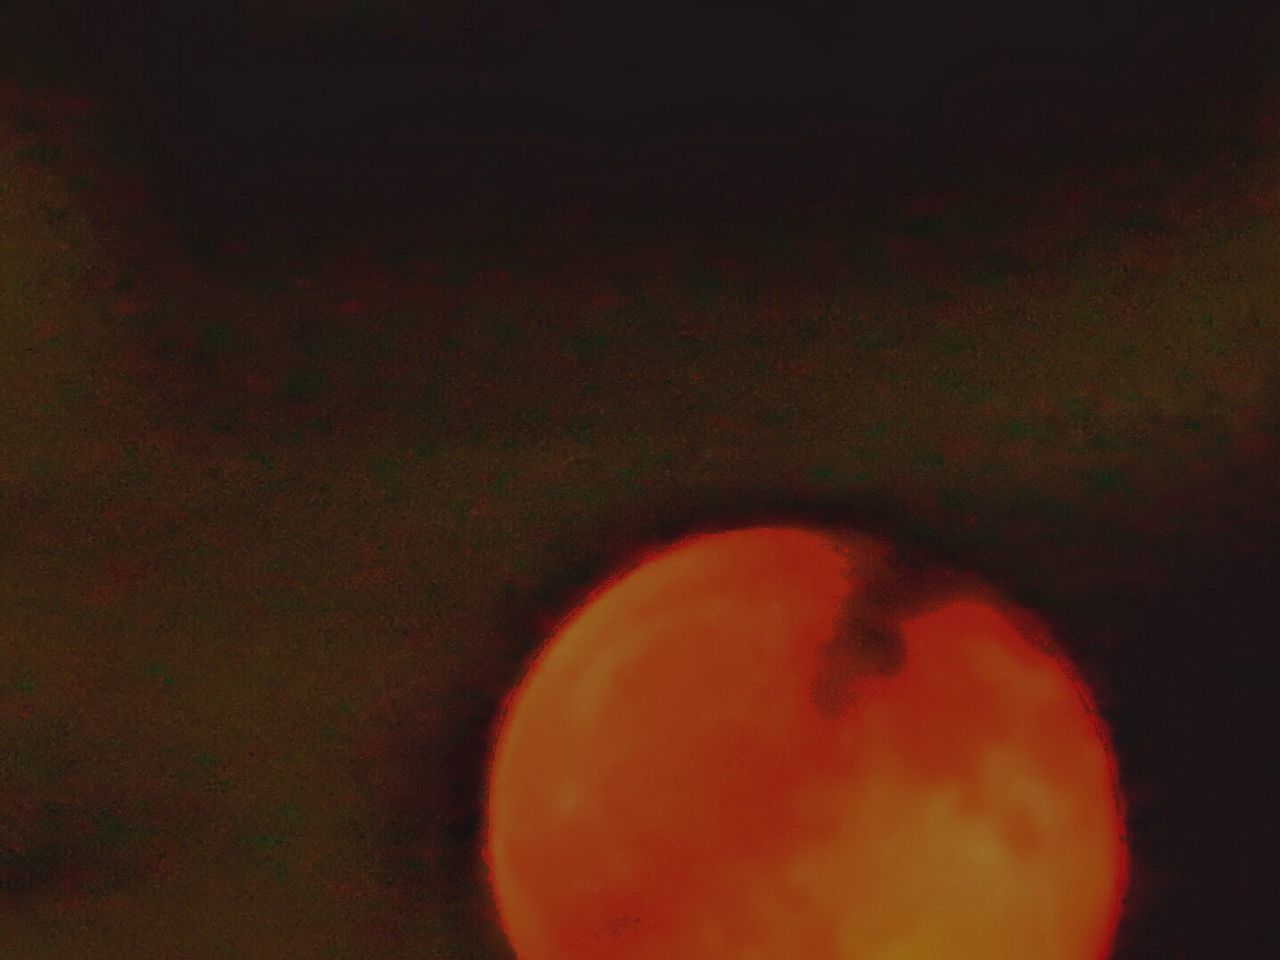 food and drink, fruit, healthy eating, no people, freshness, food, indoors, close-up, nature, blood orange, astronomy, day